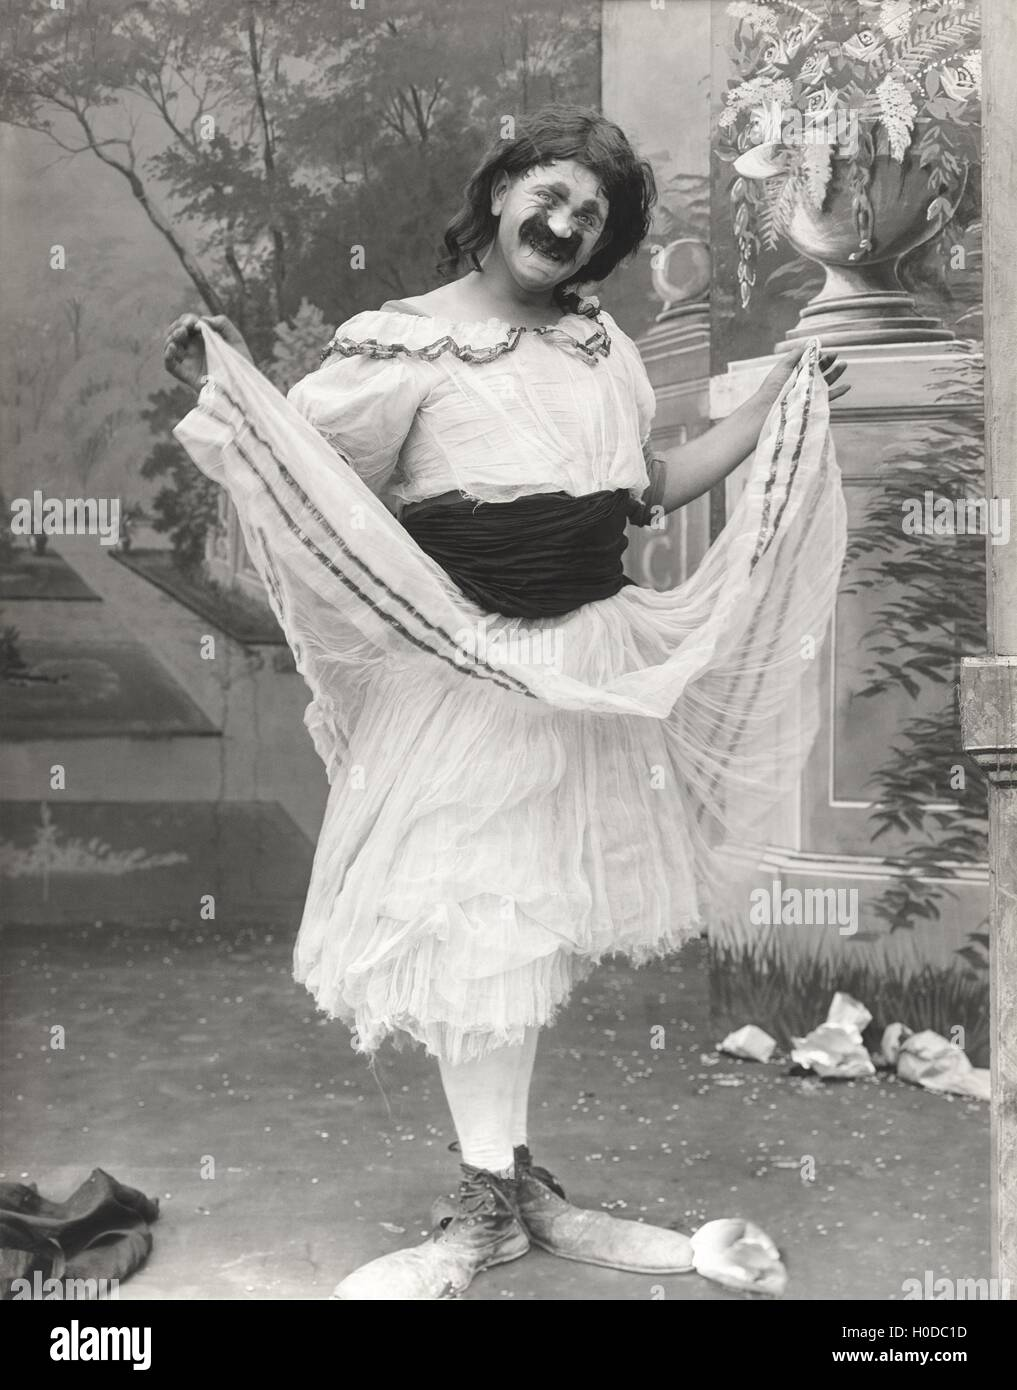 Man in clown shoes dressed in drag - Stock Image